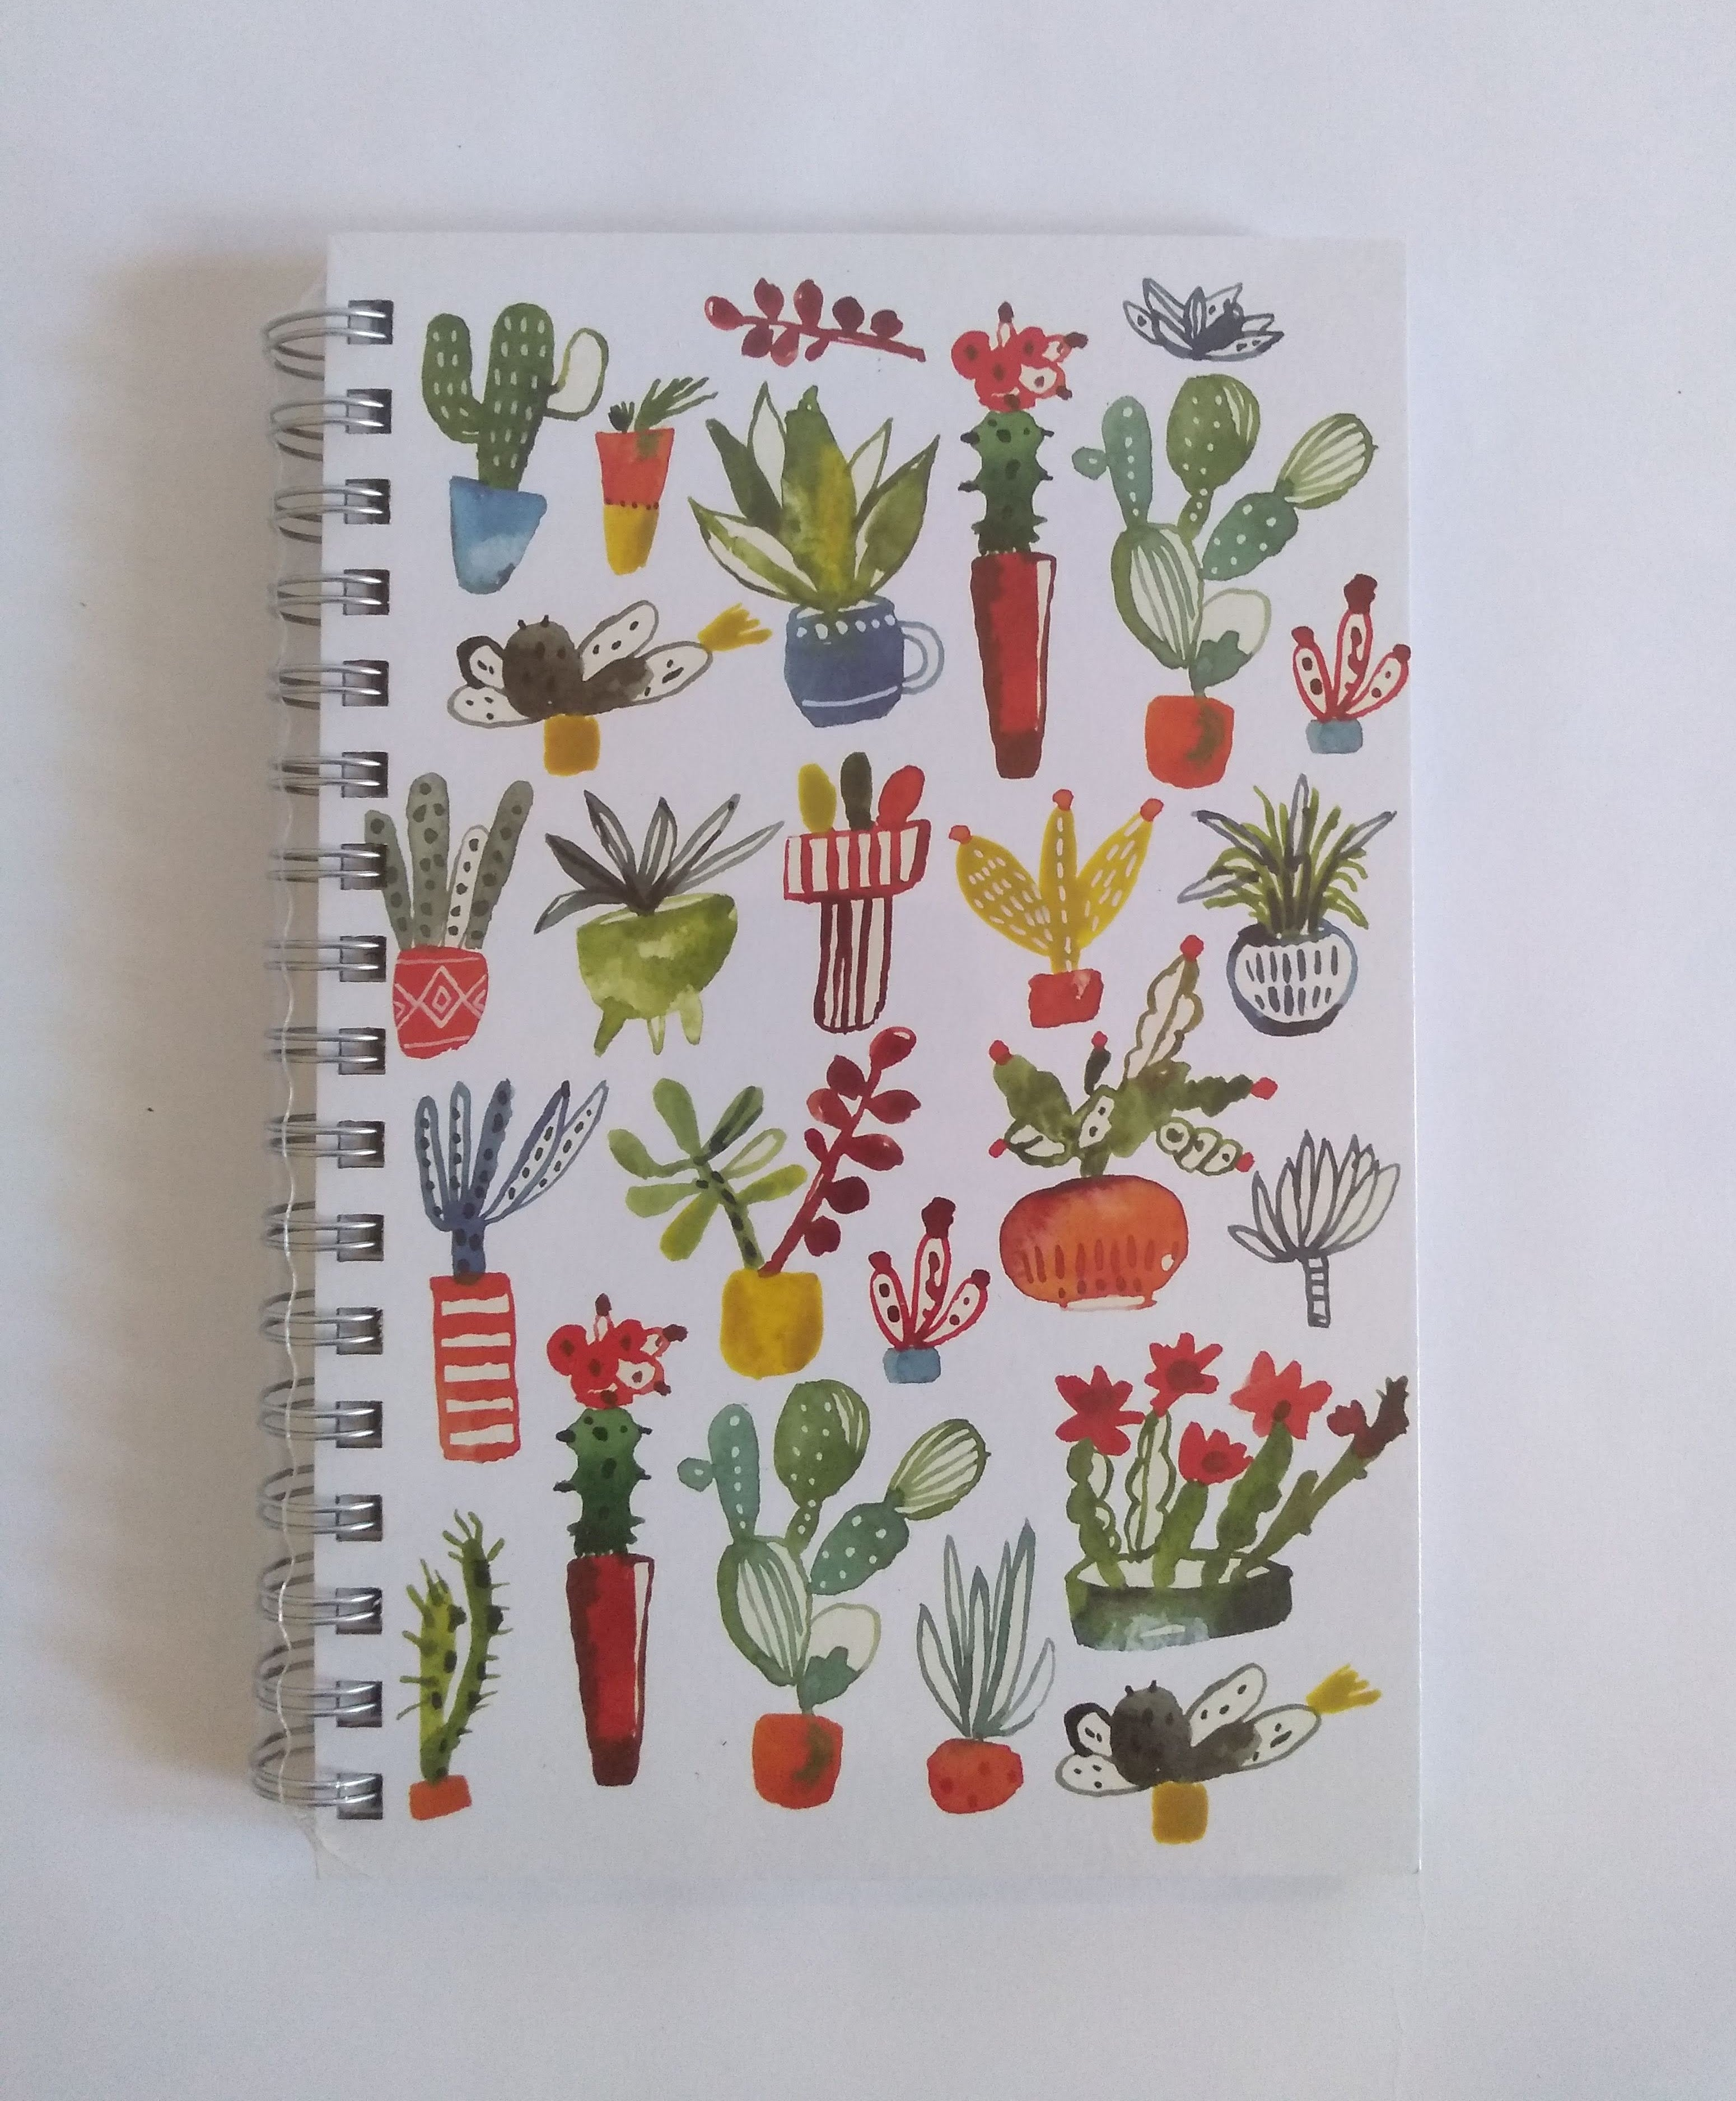 Ecojot Sprial bound lined notebook